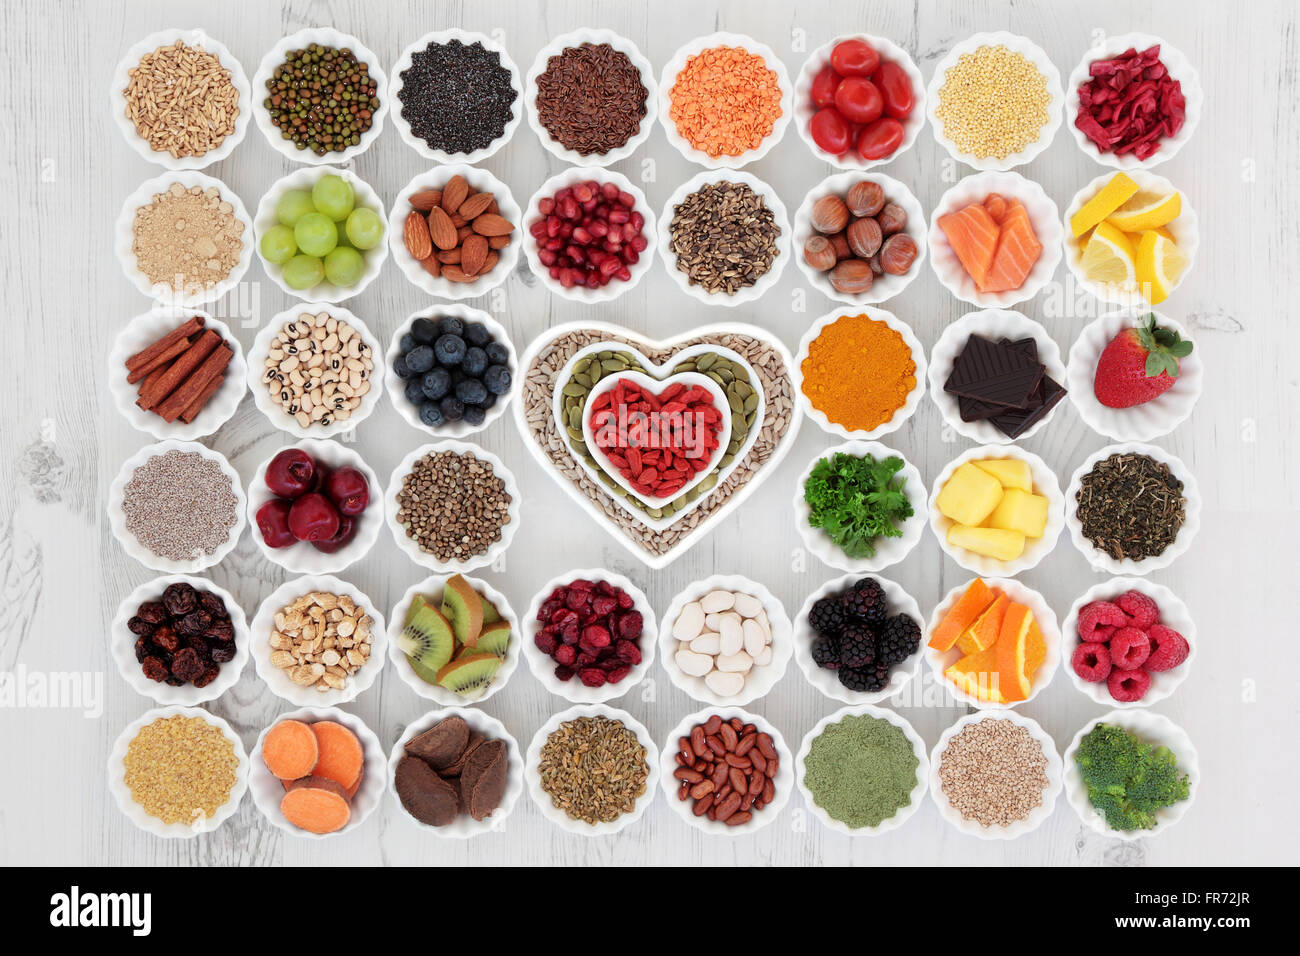 Large superfood selection in porcelain crinkle bowls and heart shaped dishes over distressed wooden background. - Stock Image